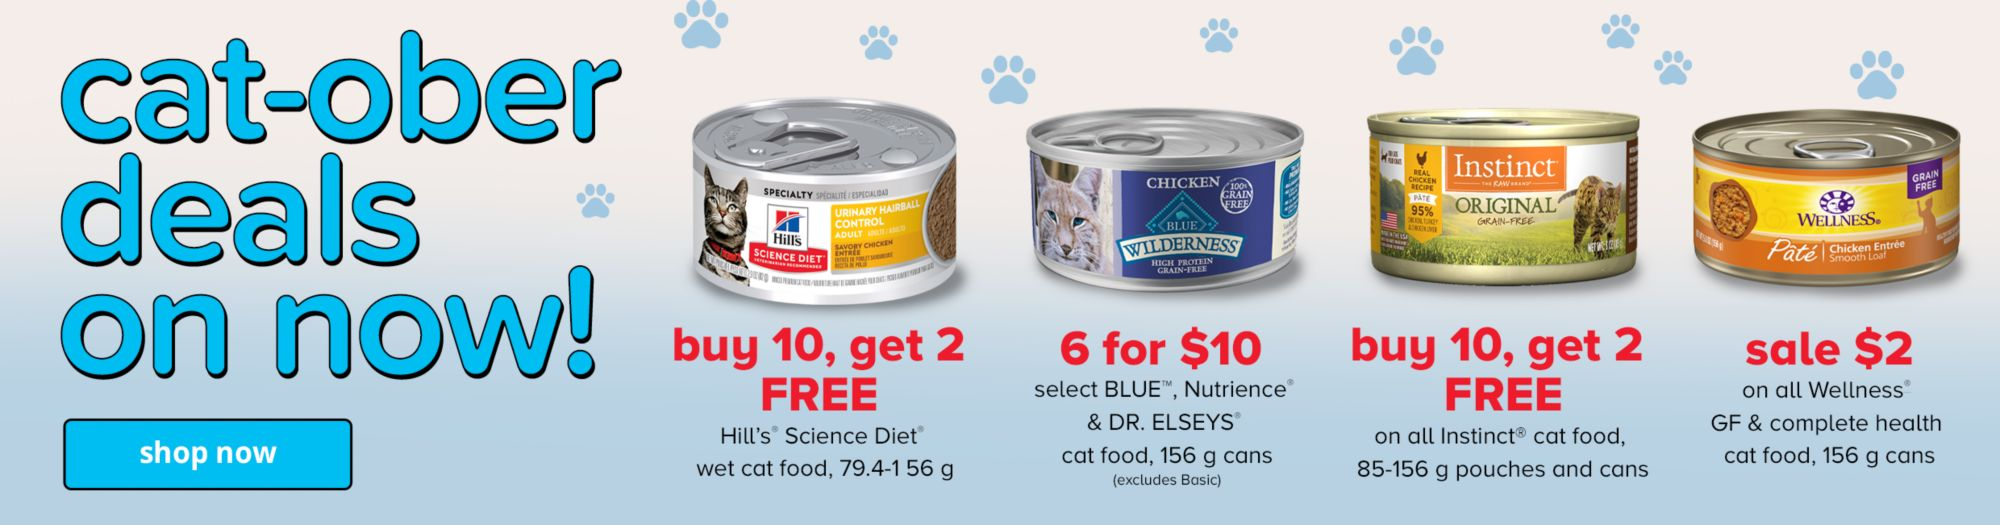 Cat-Ober deals are on now until 10/31!